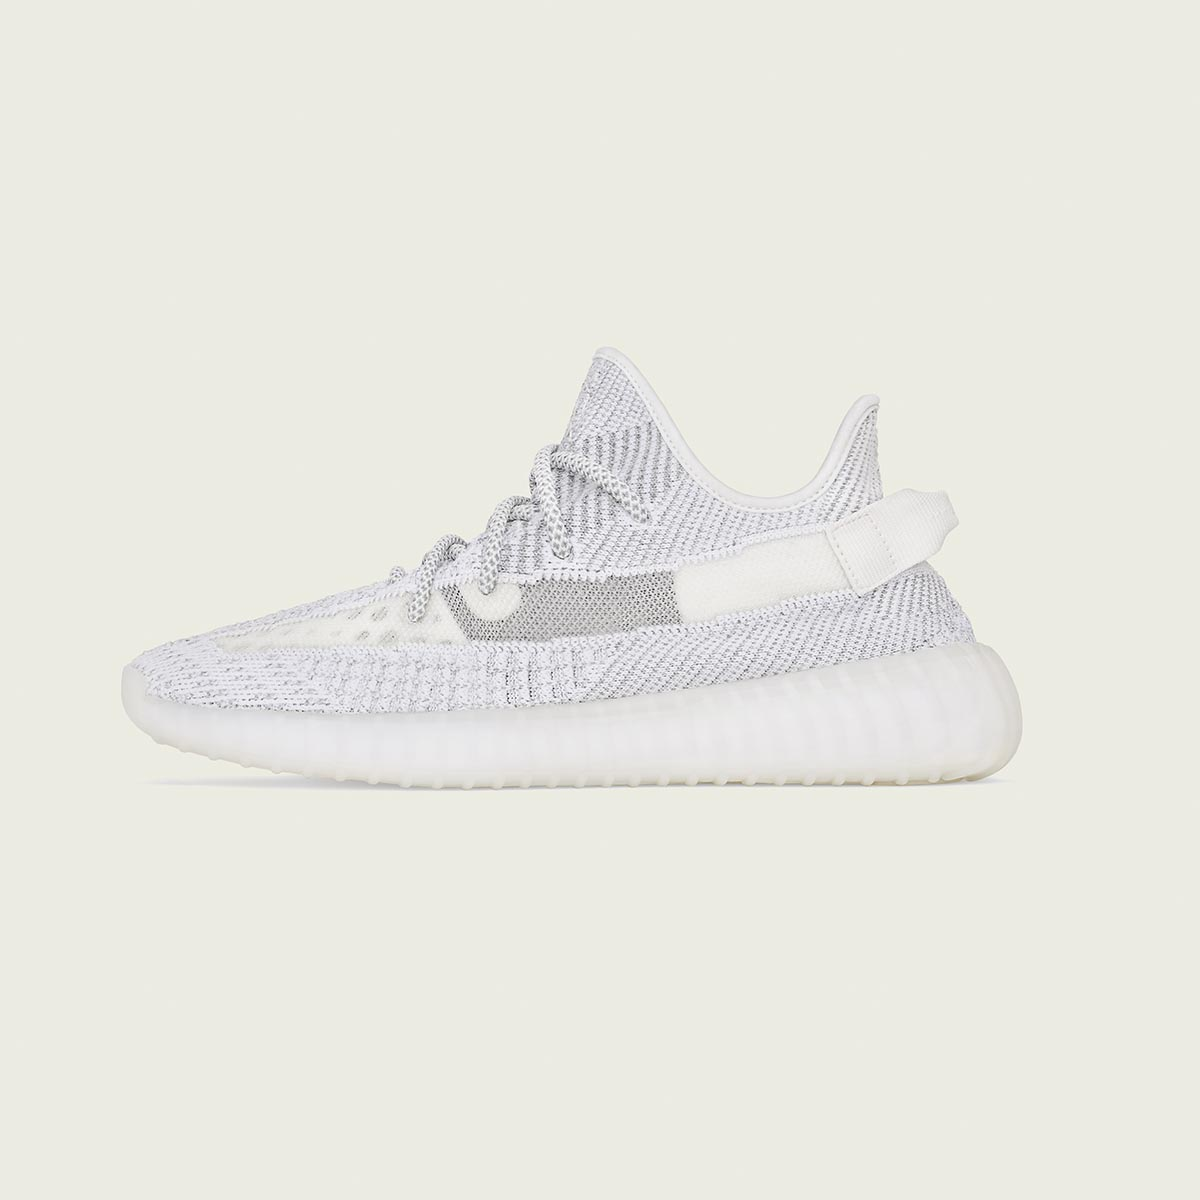 yeezy static reflective sold out